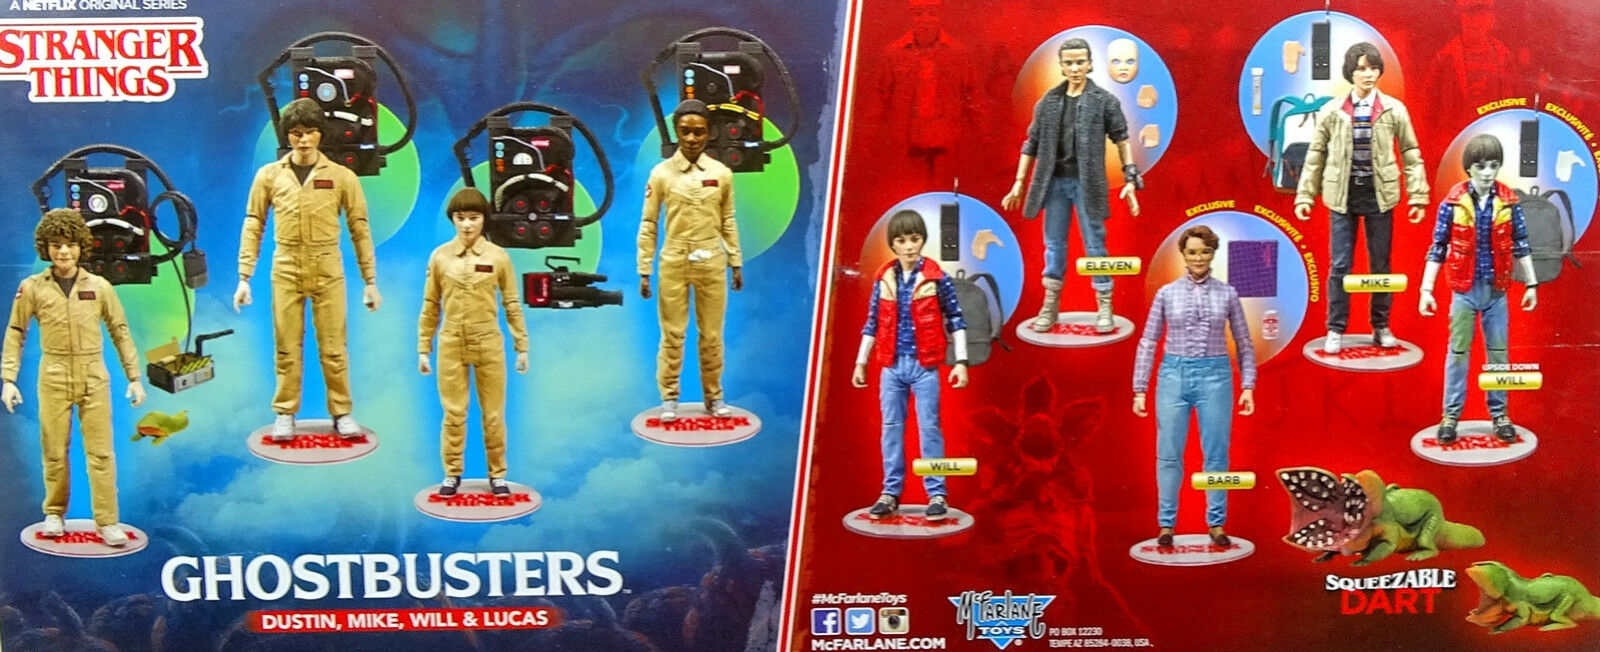 Stranger Things Dustin, Mike, Will & & & Lucas come GHOSTBUSTERS 6 McFarlane Toys 4b3a01